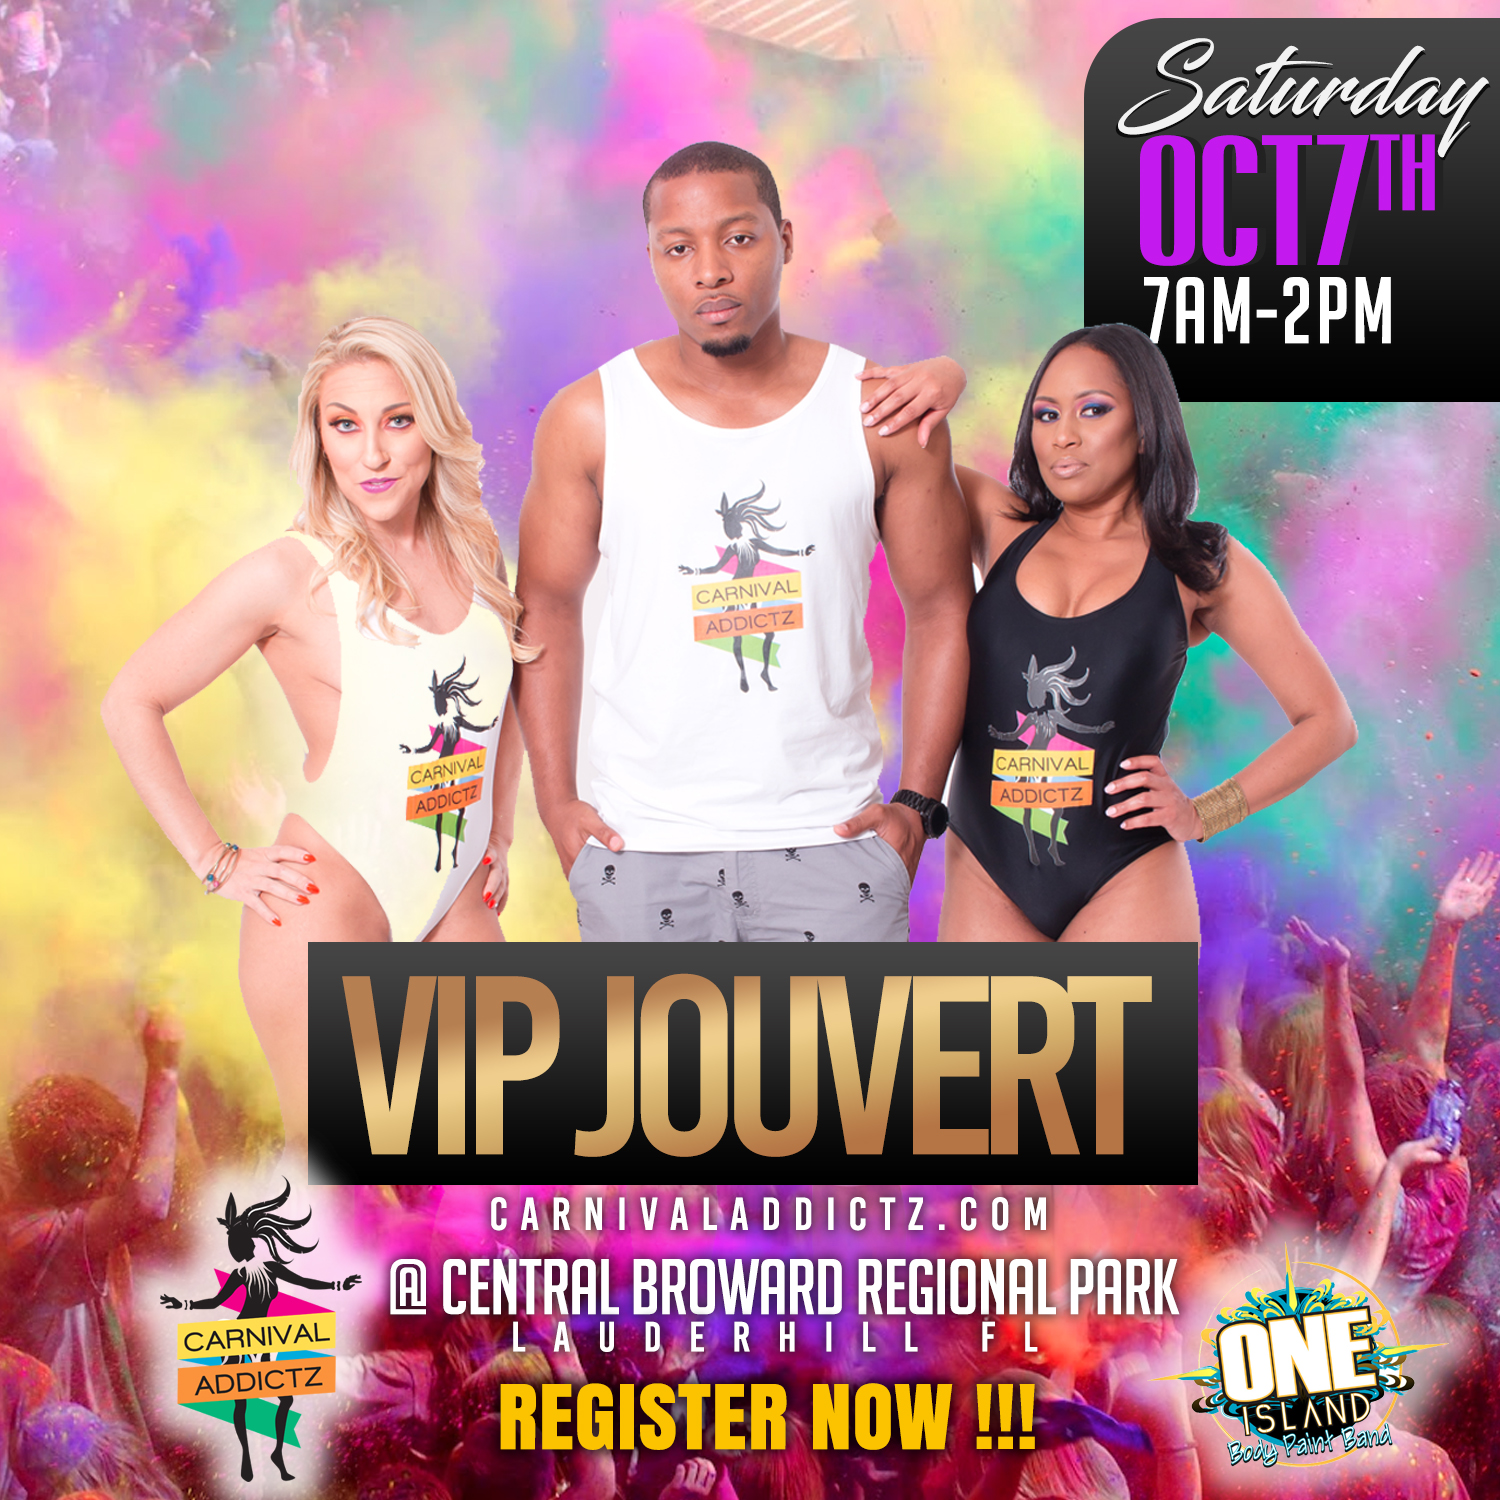 Carnival Addictz - It's J'ouvert time again! We're happy to have you as a part of the Carnival Addictz VIP section. As we prepare for Miami J'ouvert 2017, please note the following information: Distribution: for Carnival Addictz J'ouvert 2017 takes place at: Miami Beach Resort and Spa Location: 4833 Collins Avenue, Miami Beach, FL 33140, USAIn the Regency Ballroom & Conference Room Dates: Thursday October 5th & Friday October 6th 2017   Distribution: times are as follows:12.00PM - 2.00PM & 6:00PM – 12:00AM  What to bring:Your printed receiptForm of ID Collecting for someone else?What to bring:Printed receiptLetter of authorizationCopy of ID of the person whose package is being collected (This person's name MUST be on the receipt)ID of the person who is collecting the packageNOTE: For patrons who purchased MULTIPLE packages, ALL PACKAGES MUST BE COLLECTED AT THE SAME TIME. Please be reminded that your PRINTED or electronic receipt MUST be presented at the distribution center.  Carnival Addictz thanks you for choosing to join us for J'ouvert.We can't wait to see YOU on the ROAD.